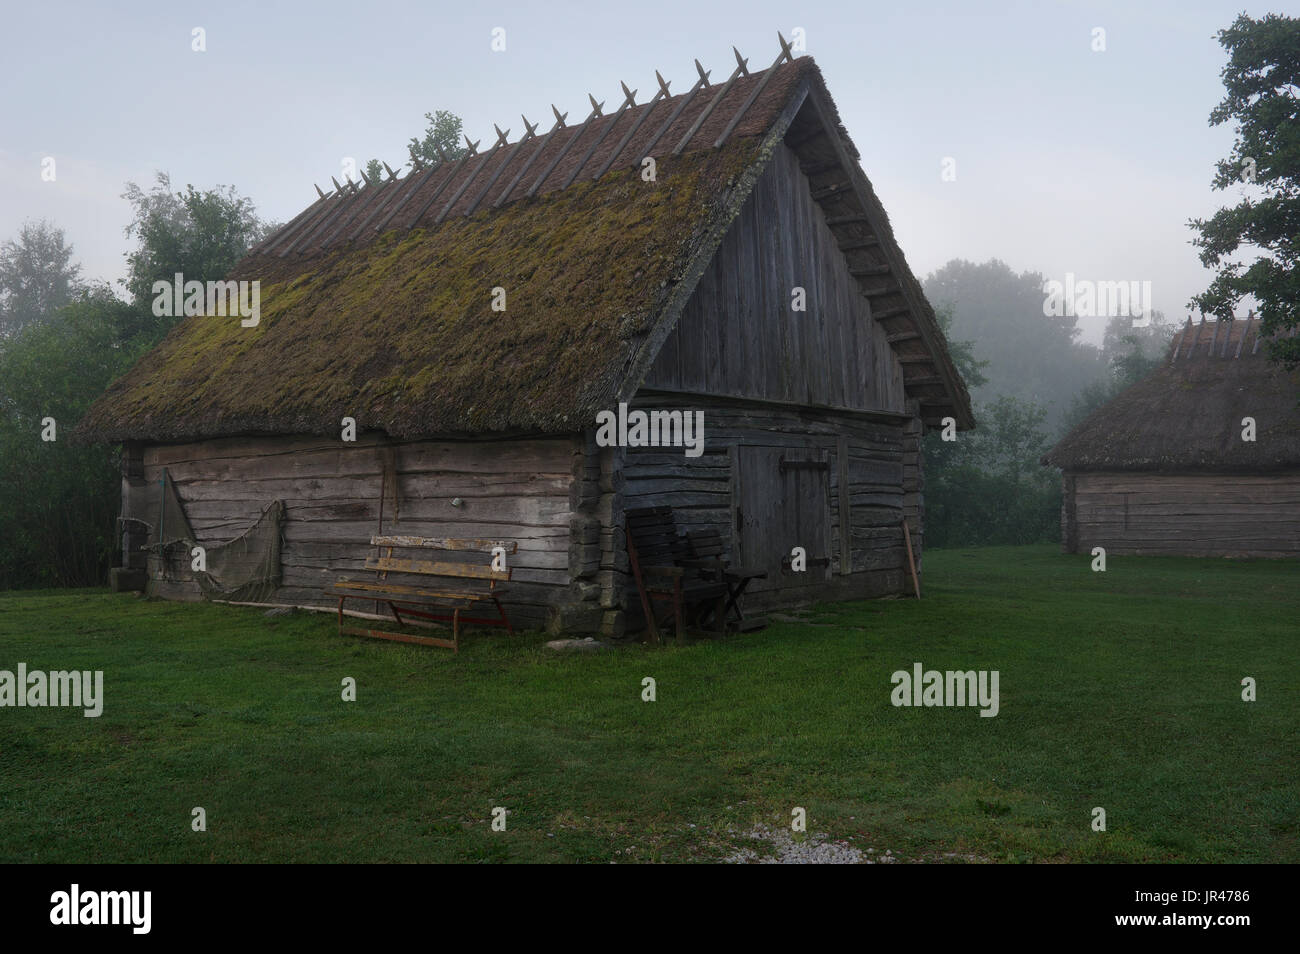 Fisherman's hut early foggy morning at Suitsu river, Matsalu National Park, Estonia, Europe - Stock Image